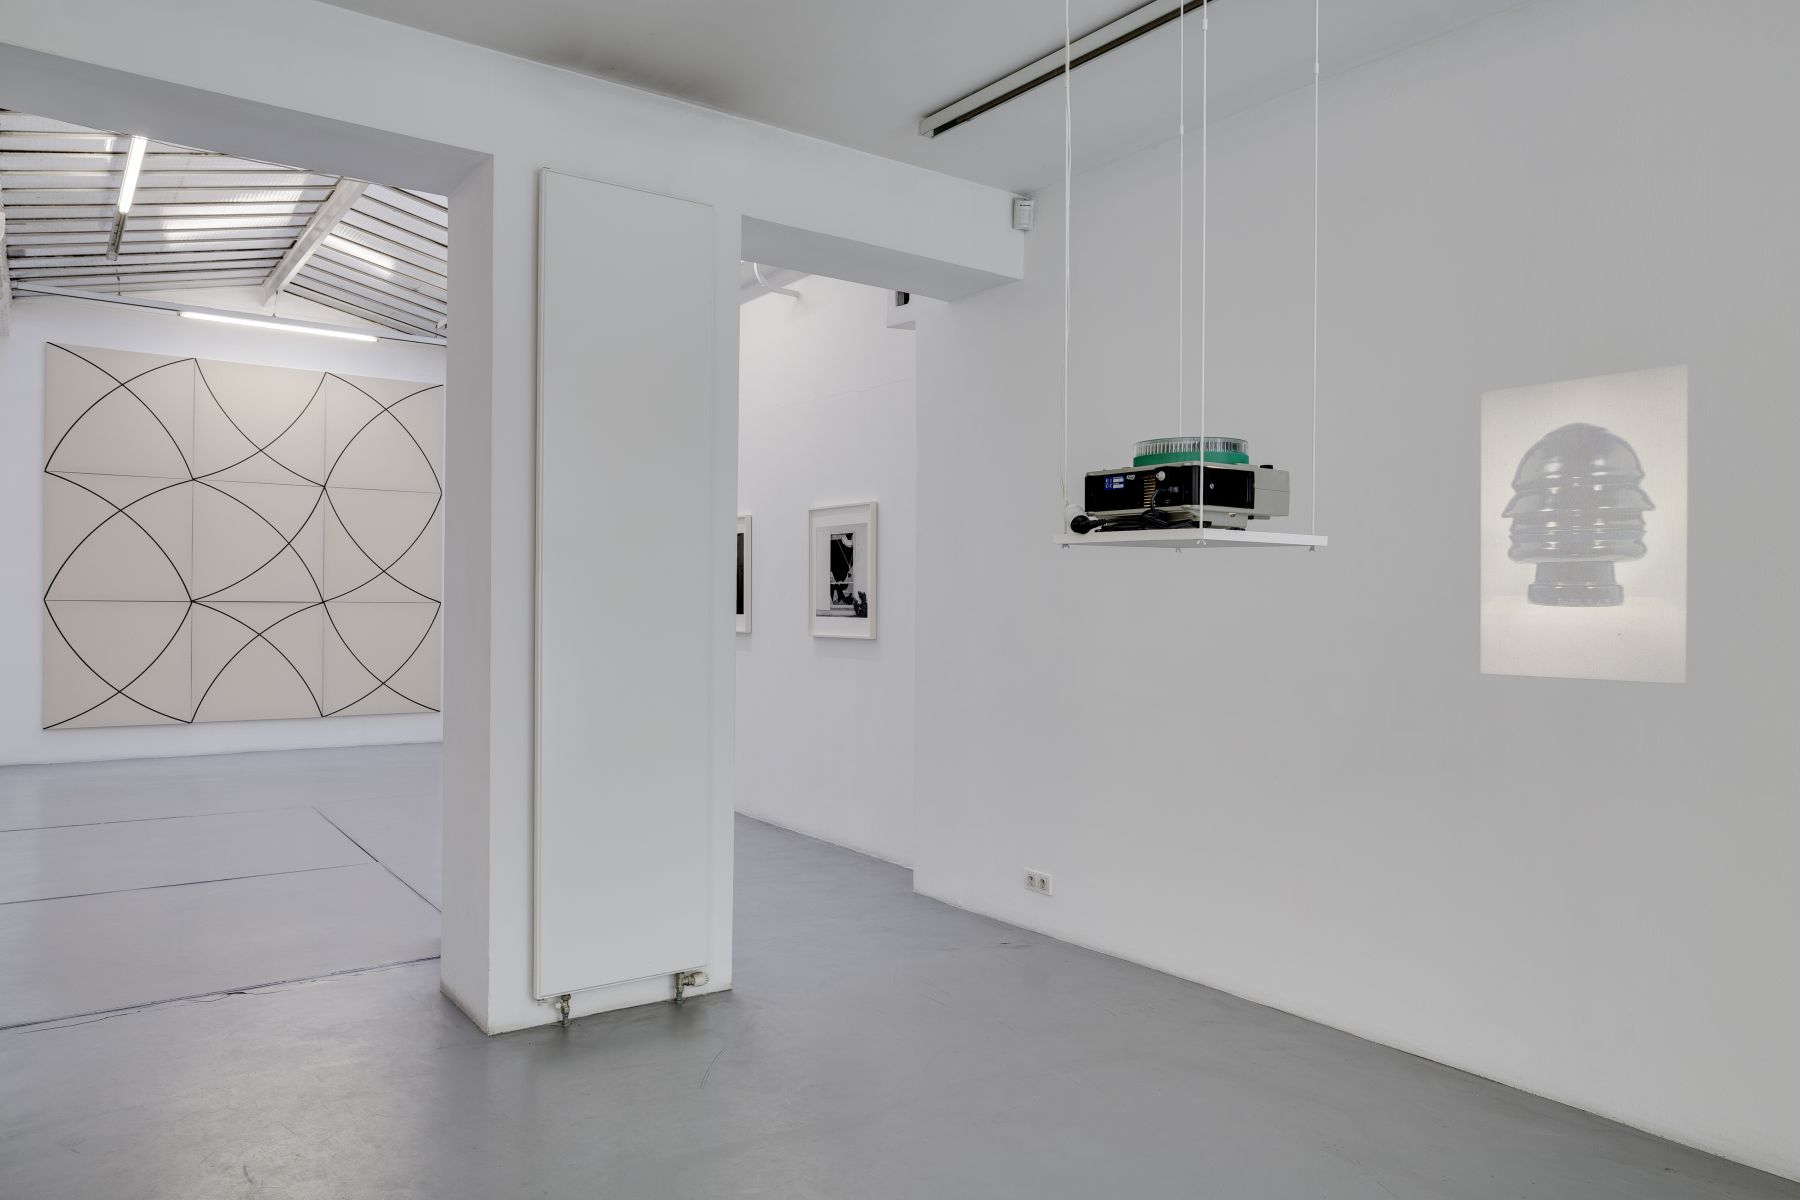 Push Pins in Elastic Space, curated by Gabriel Kuri – installation view 2